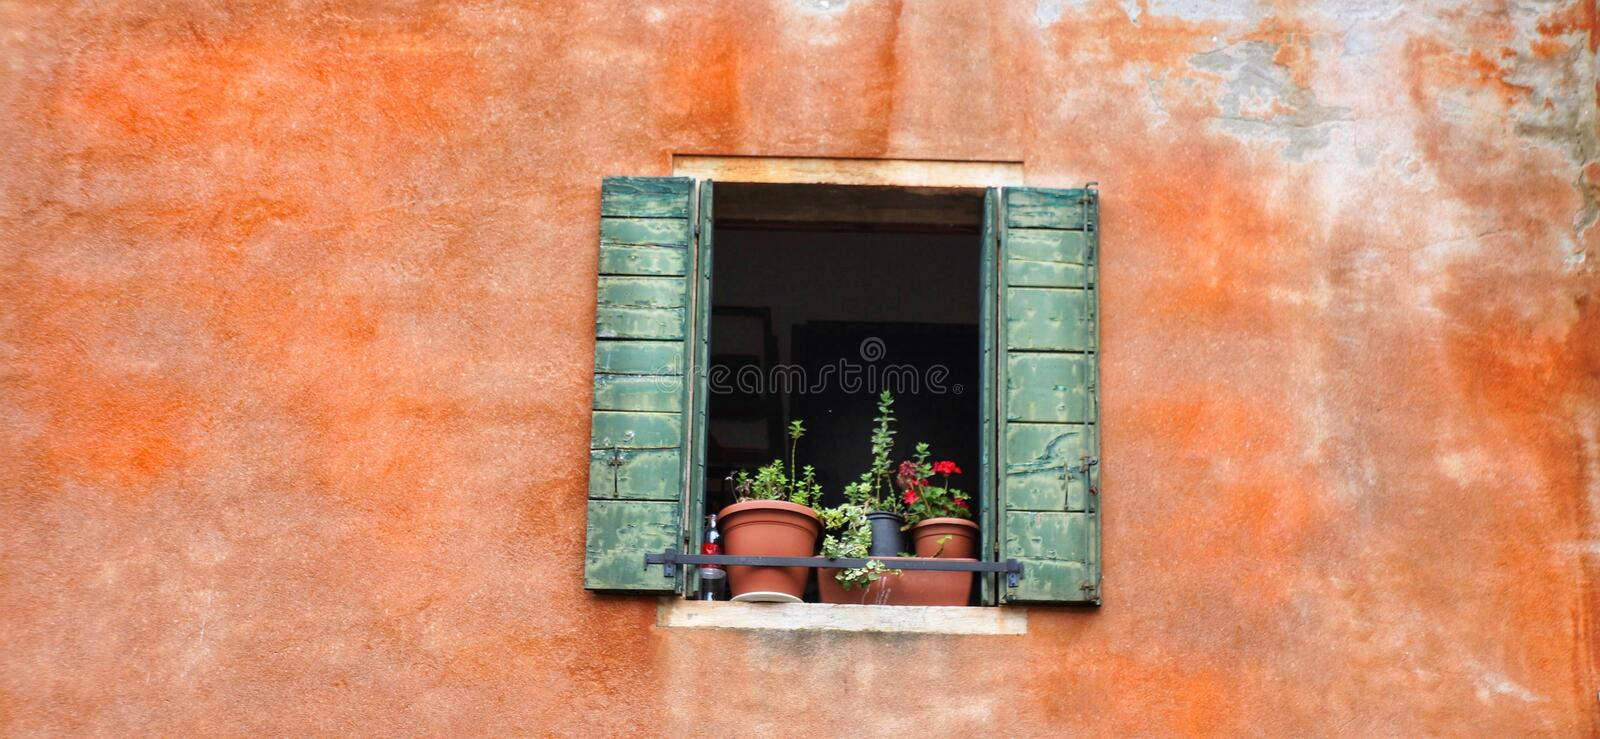 Wall, Window, Brick, Facade stock photography